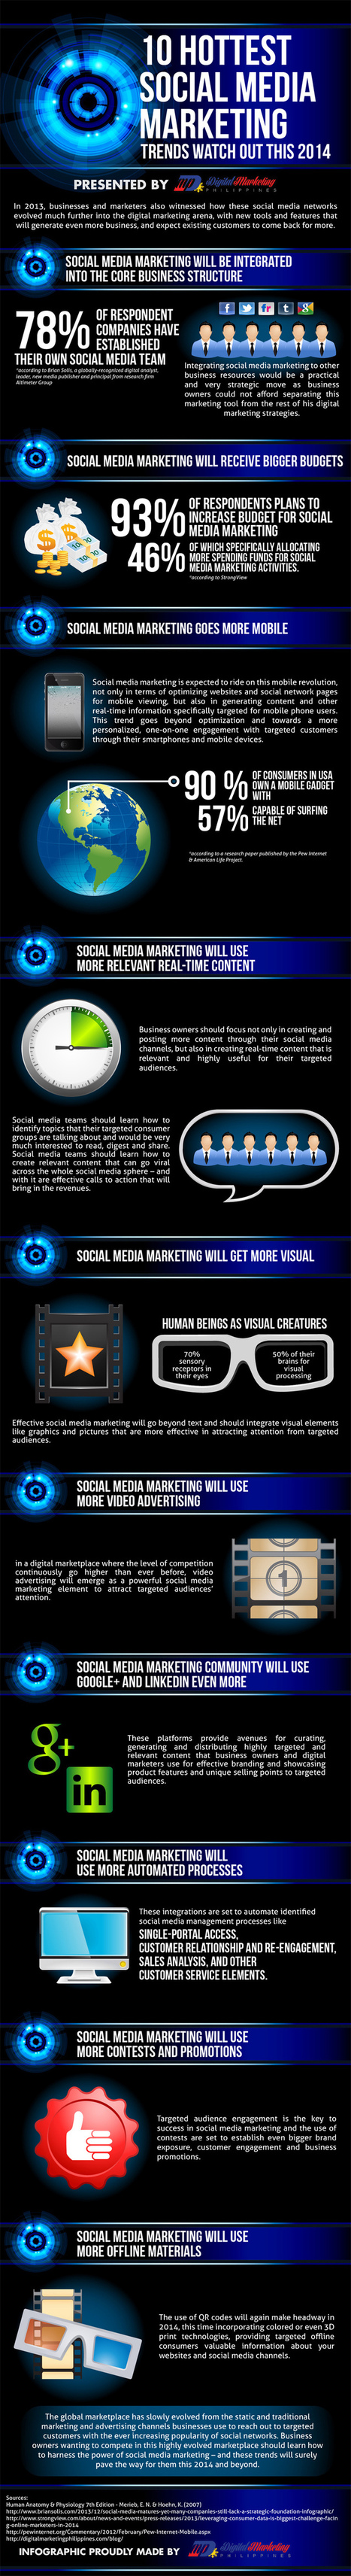 10 Hottest Social Media Marketing Trends Watch Out This 2014 (Infographic) - Business 2 Community | Inbound marketing, social and SEO | Scoop.it